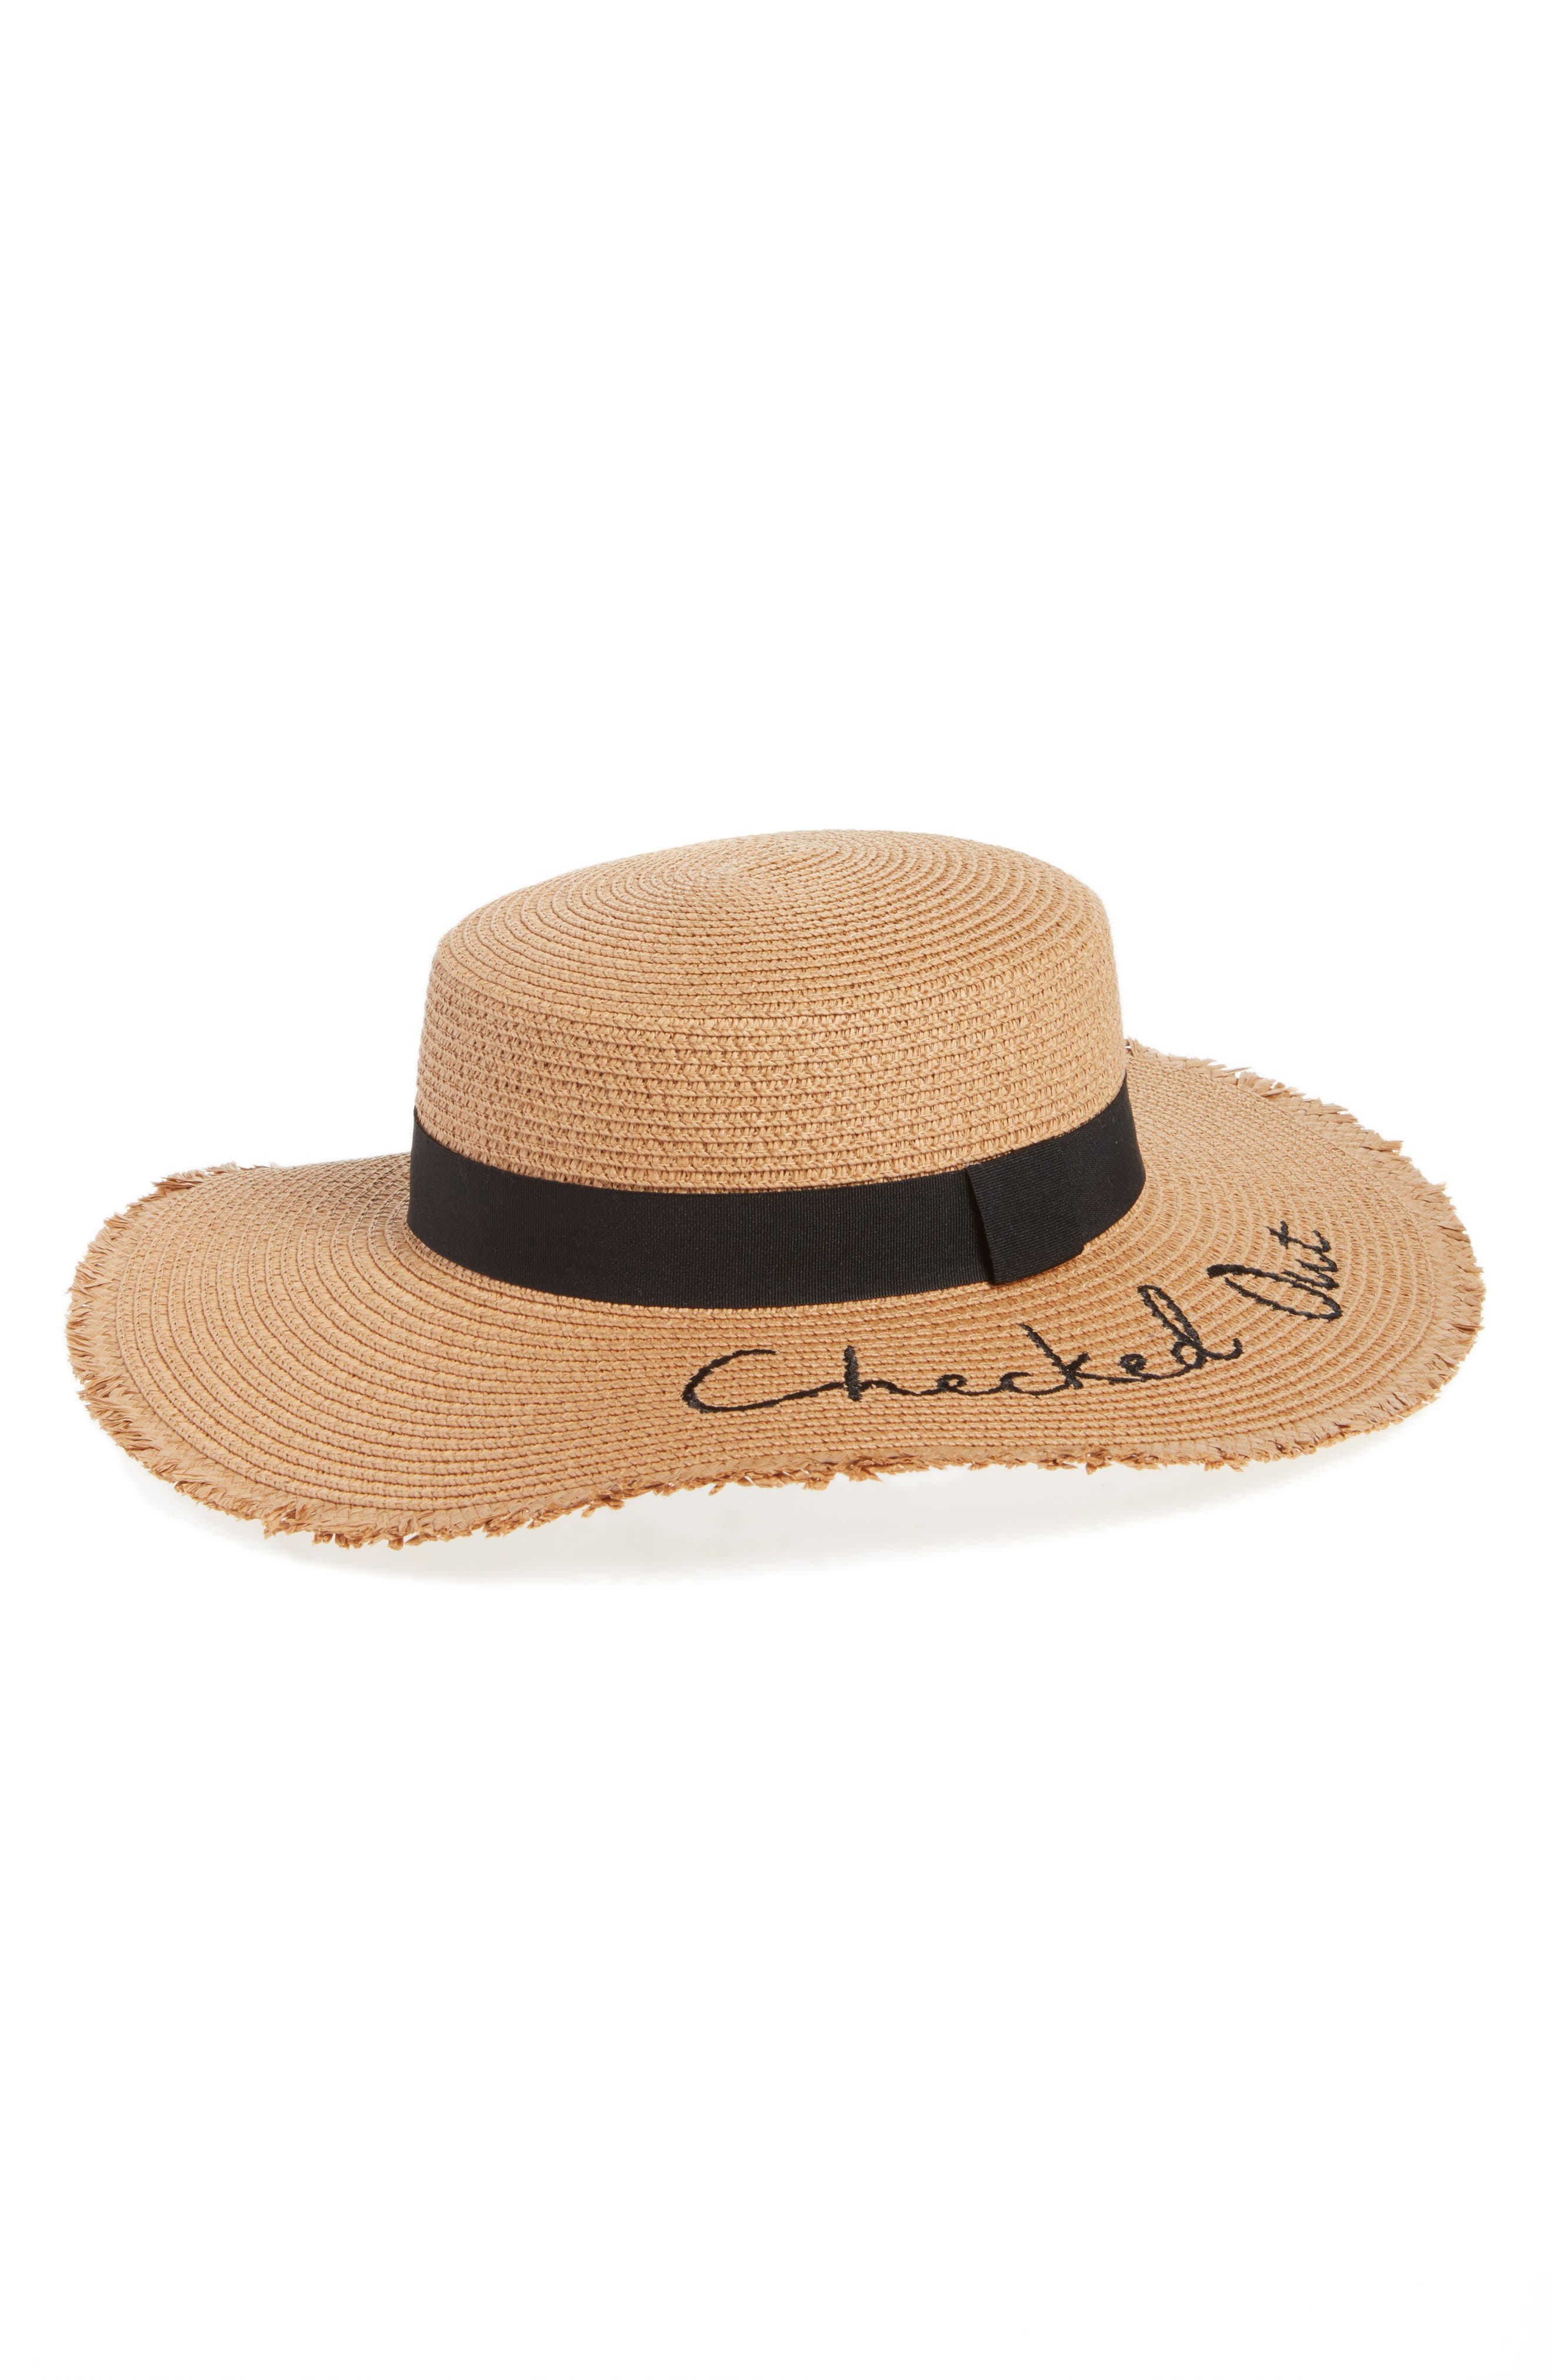 Verbiage Frayed Edge Straw Boater Hat,                         Main,                         color, Natural/ Black